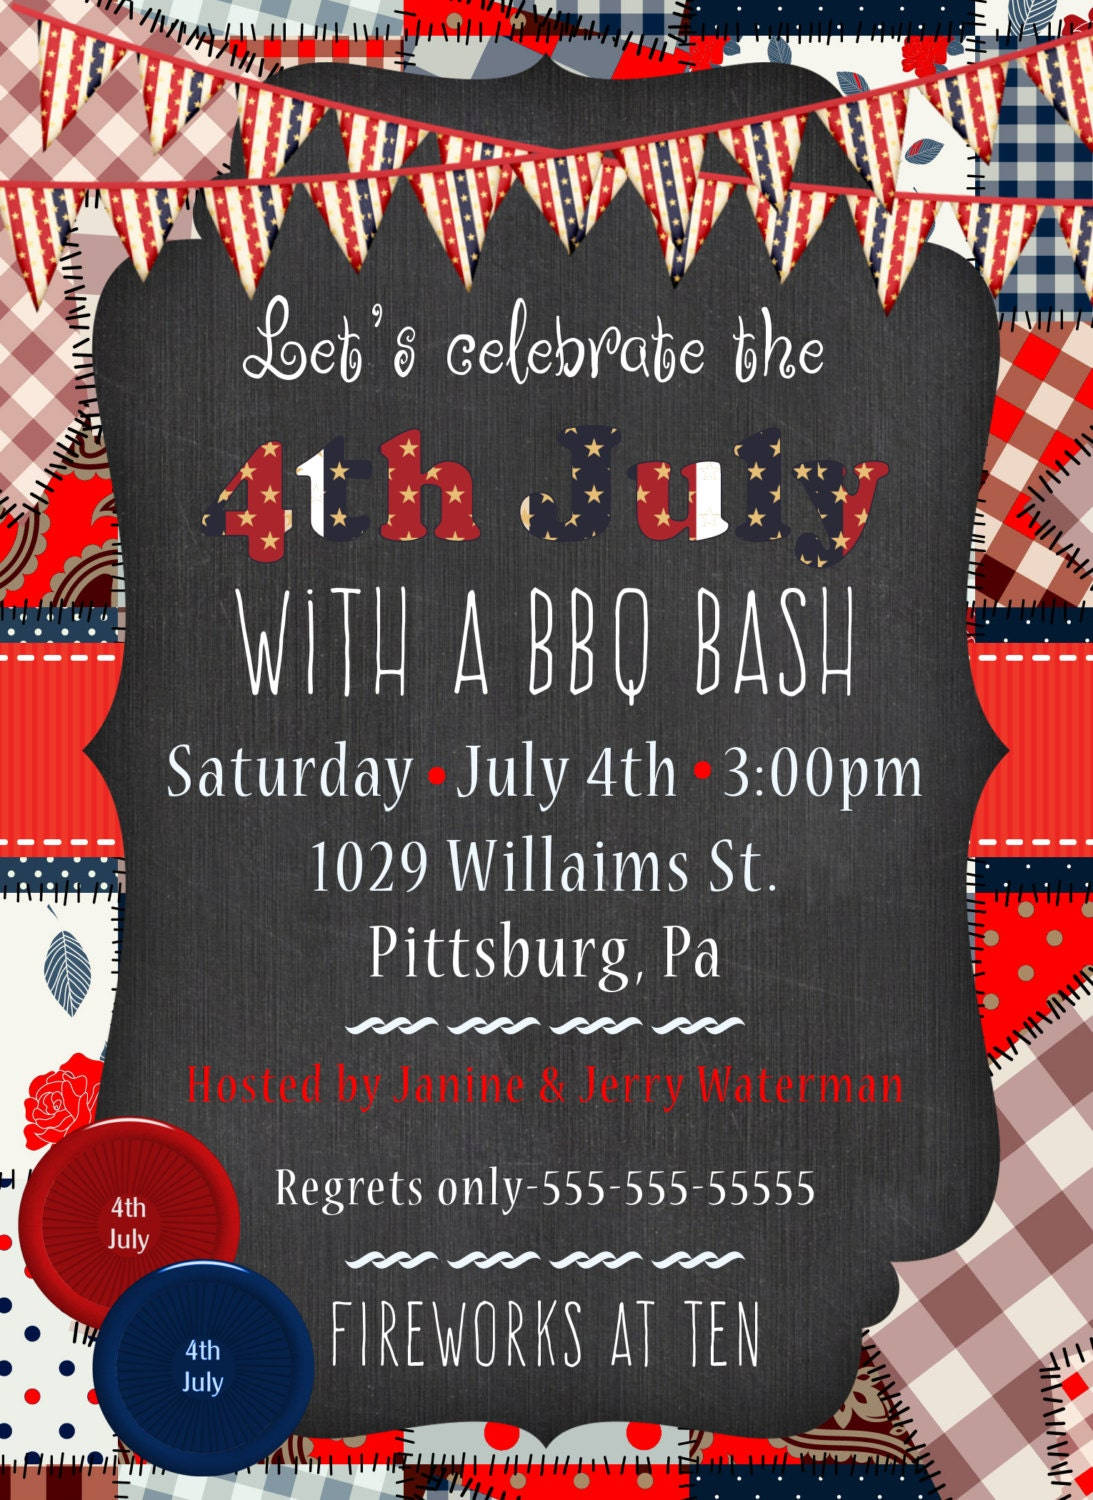 bbq invitation bbq party bbq party invitation backyard bbq